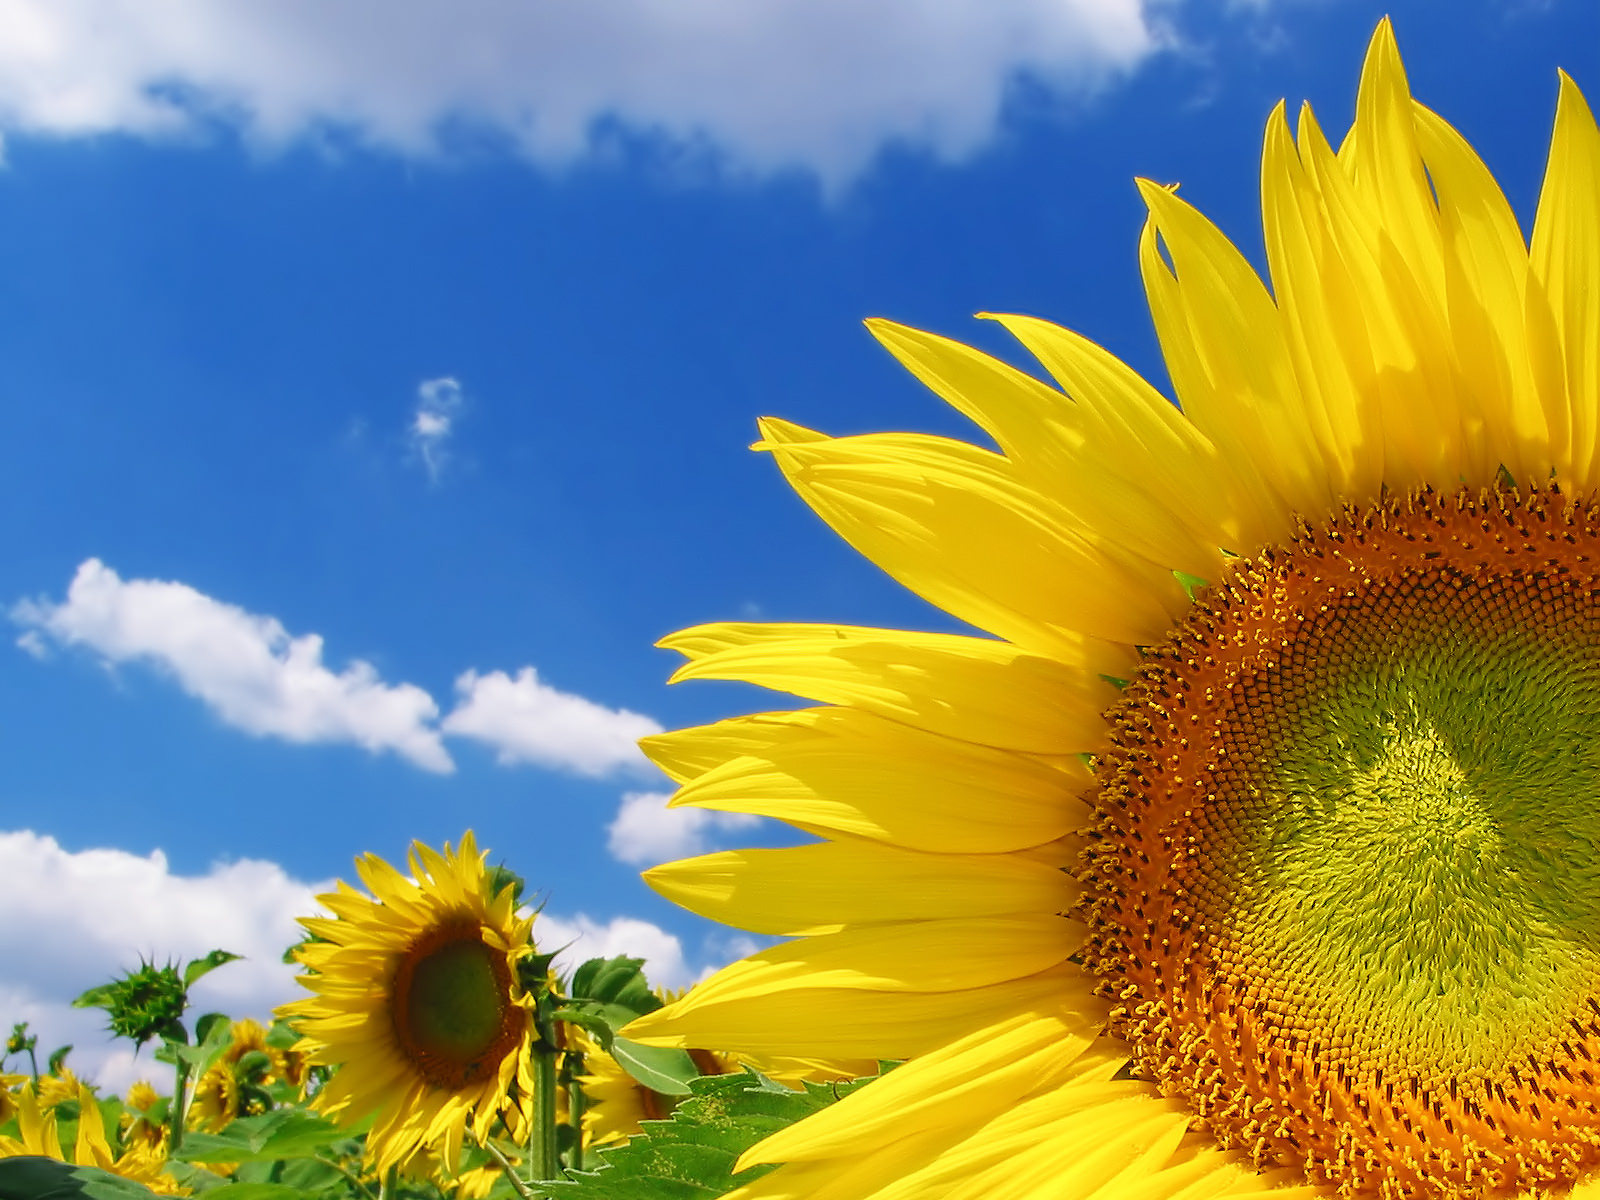 Sunflower Background For Download